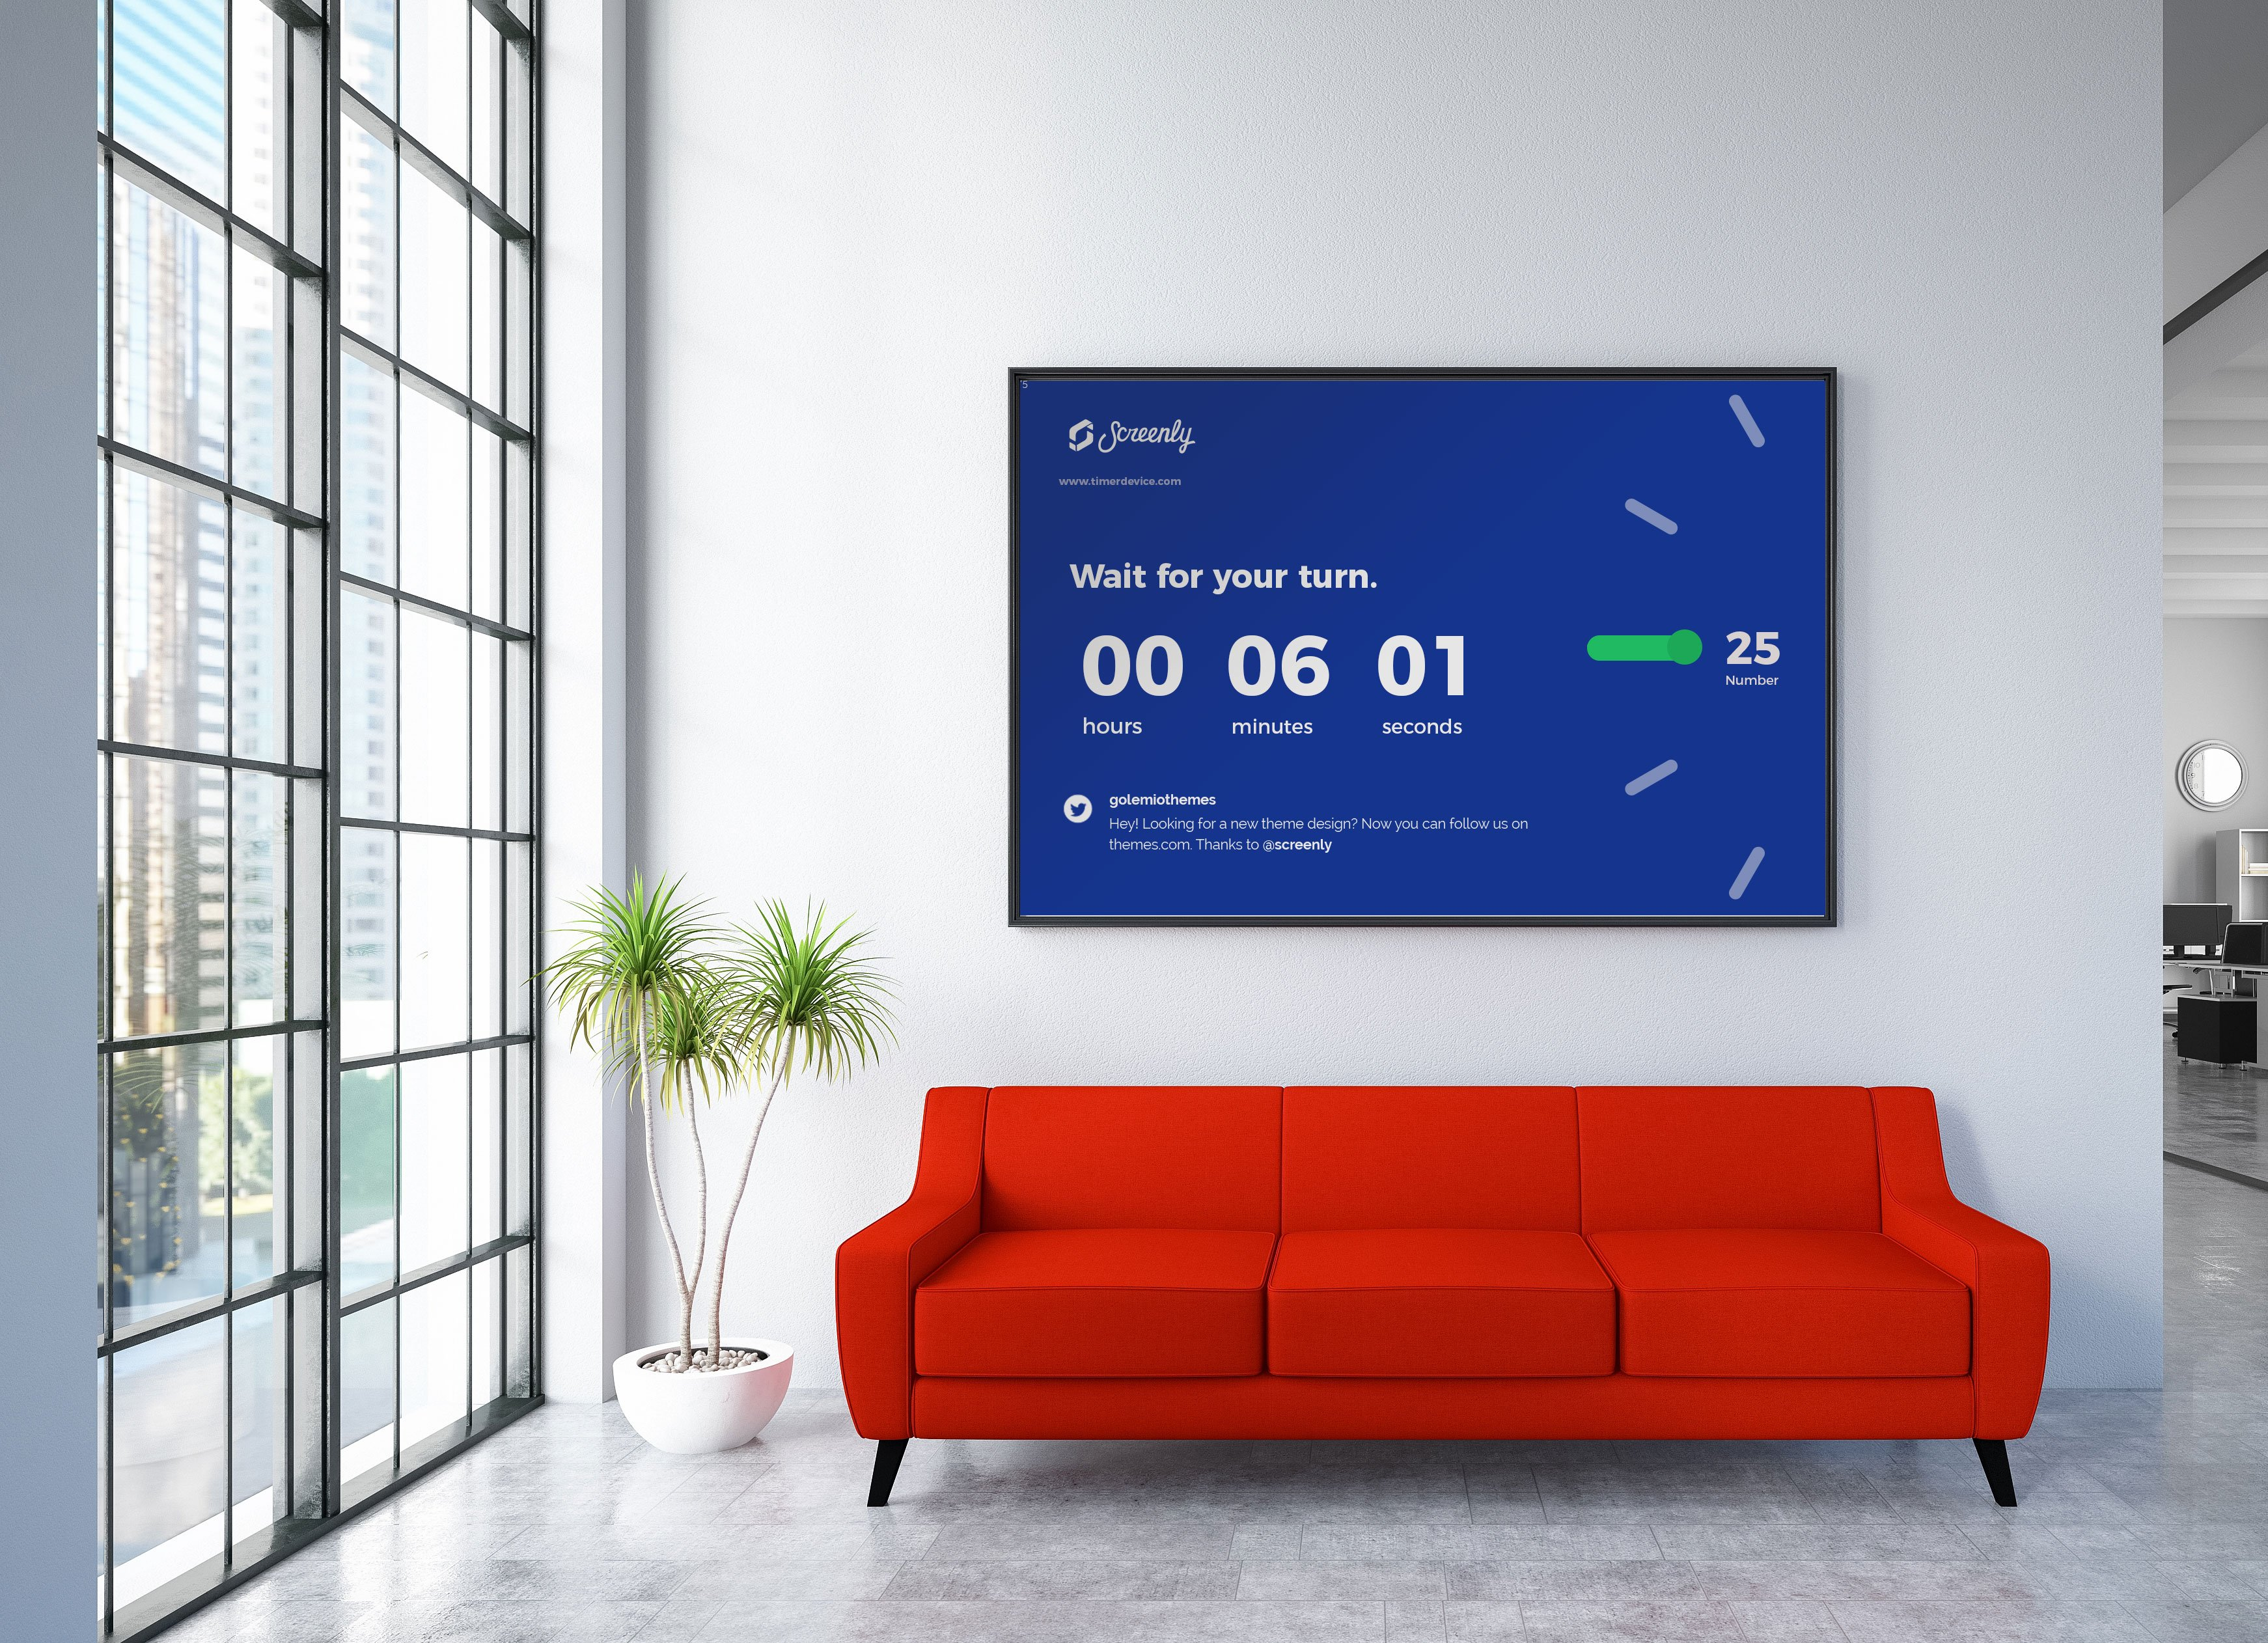 Hotels, office buildings, and residential buildings can use digital lobby signage to engage with lobby visitors. Learn how to launch digital lobby signage with Screenly.